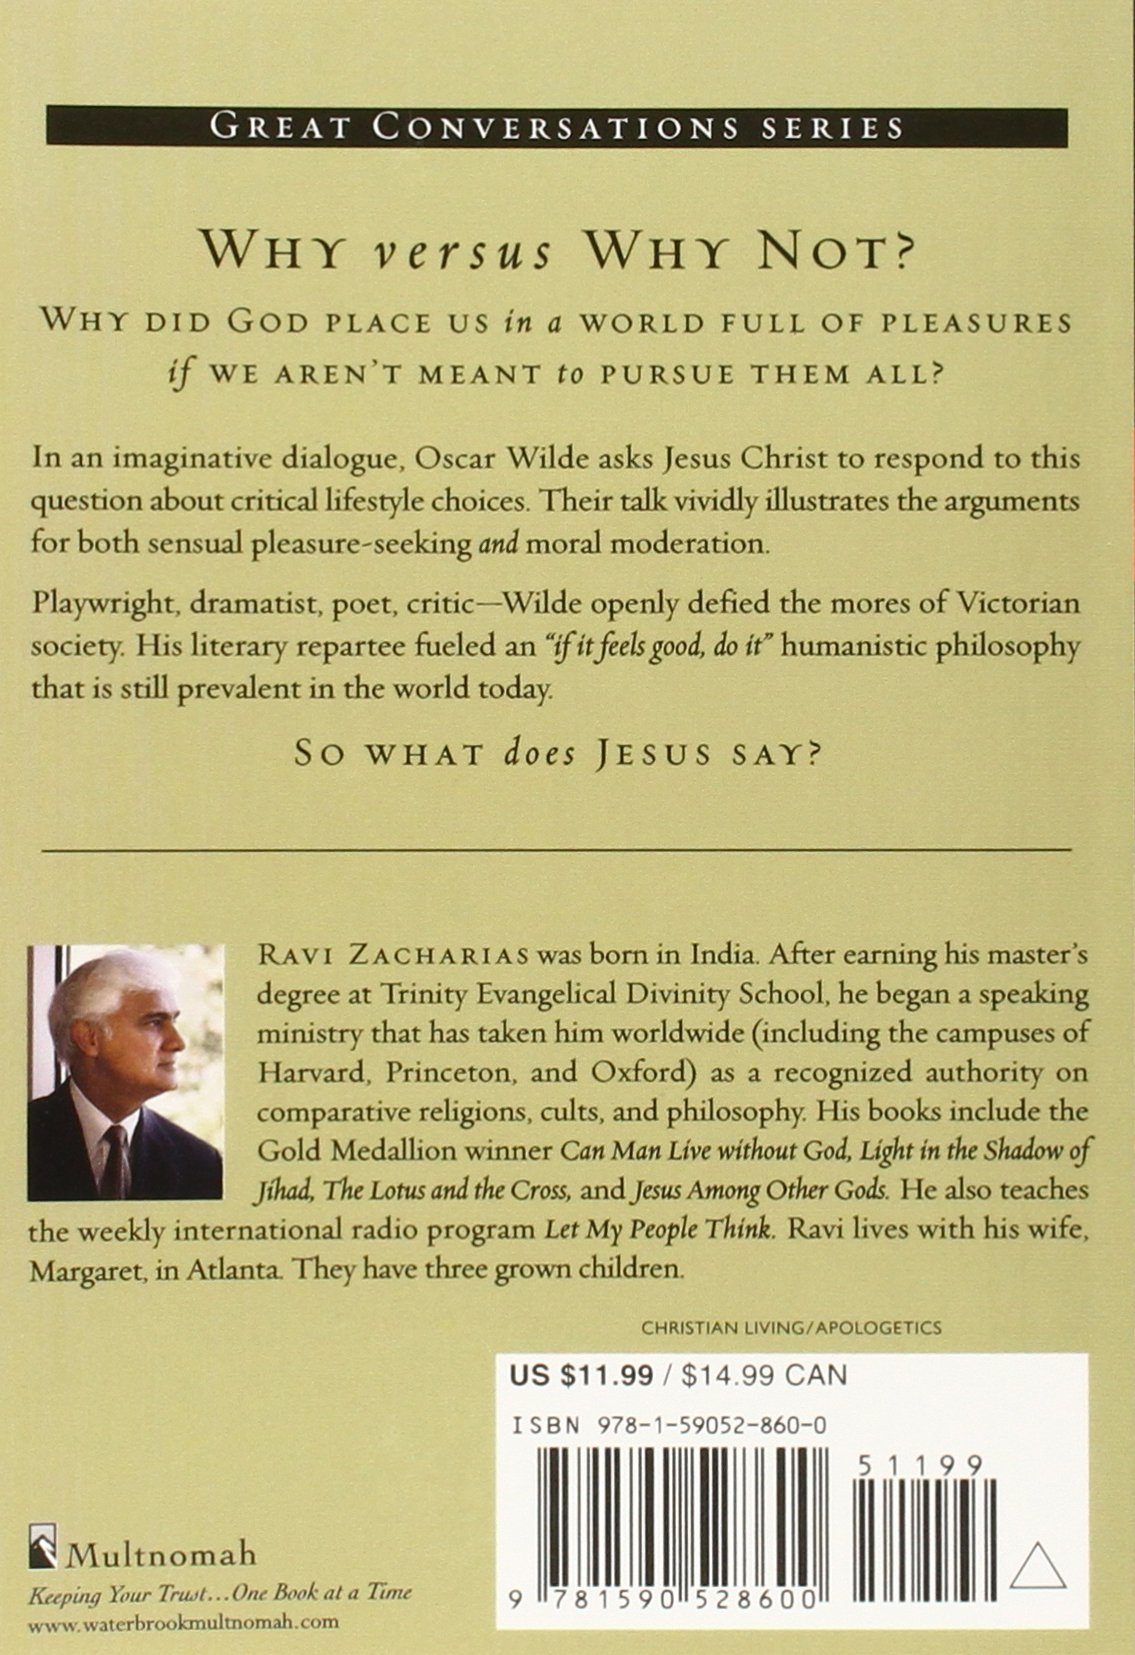 Sense and sensuality jesus talks to oscar wilde on the pursuit of sense and sensuality jesus talks to oscar wilde on the pursuit of pleasure great conversations ravi zacharias 9781590528600 amazon books nvjuhfo Images